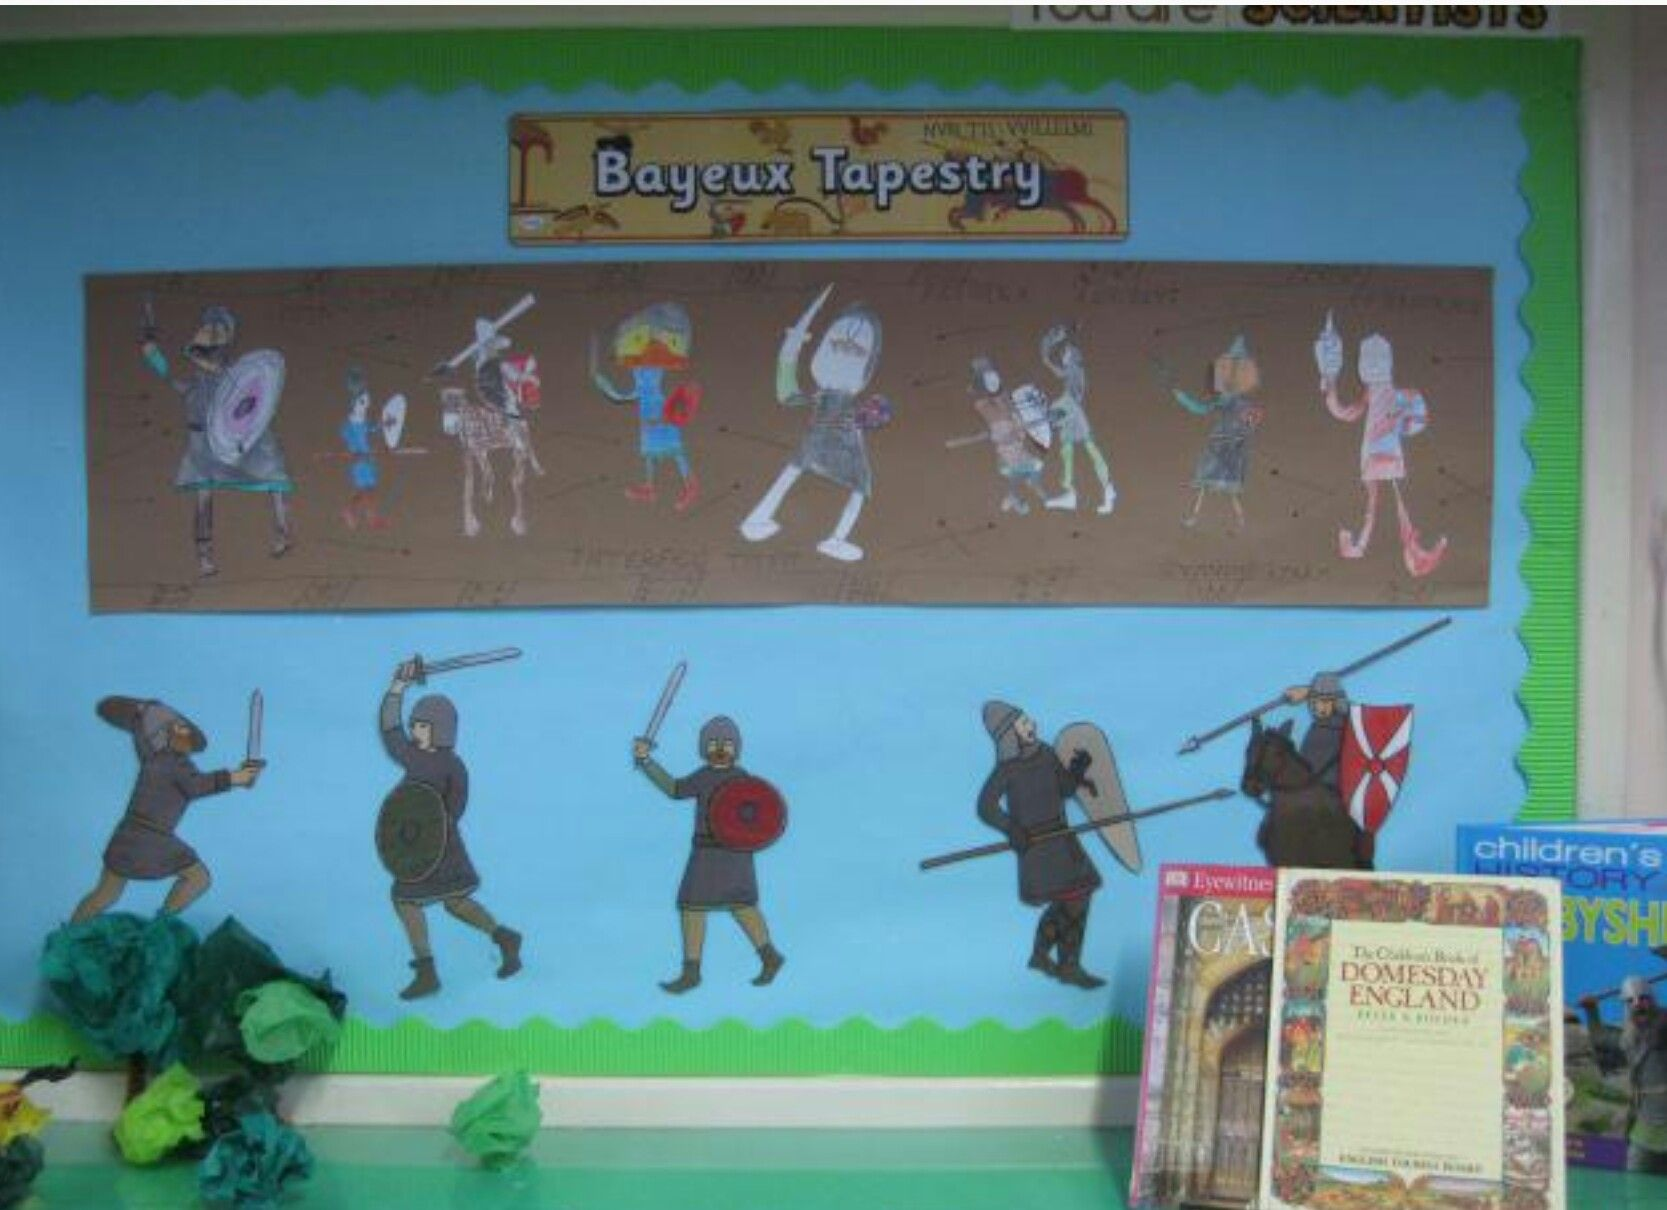 Bayeux Tapestry Display